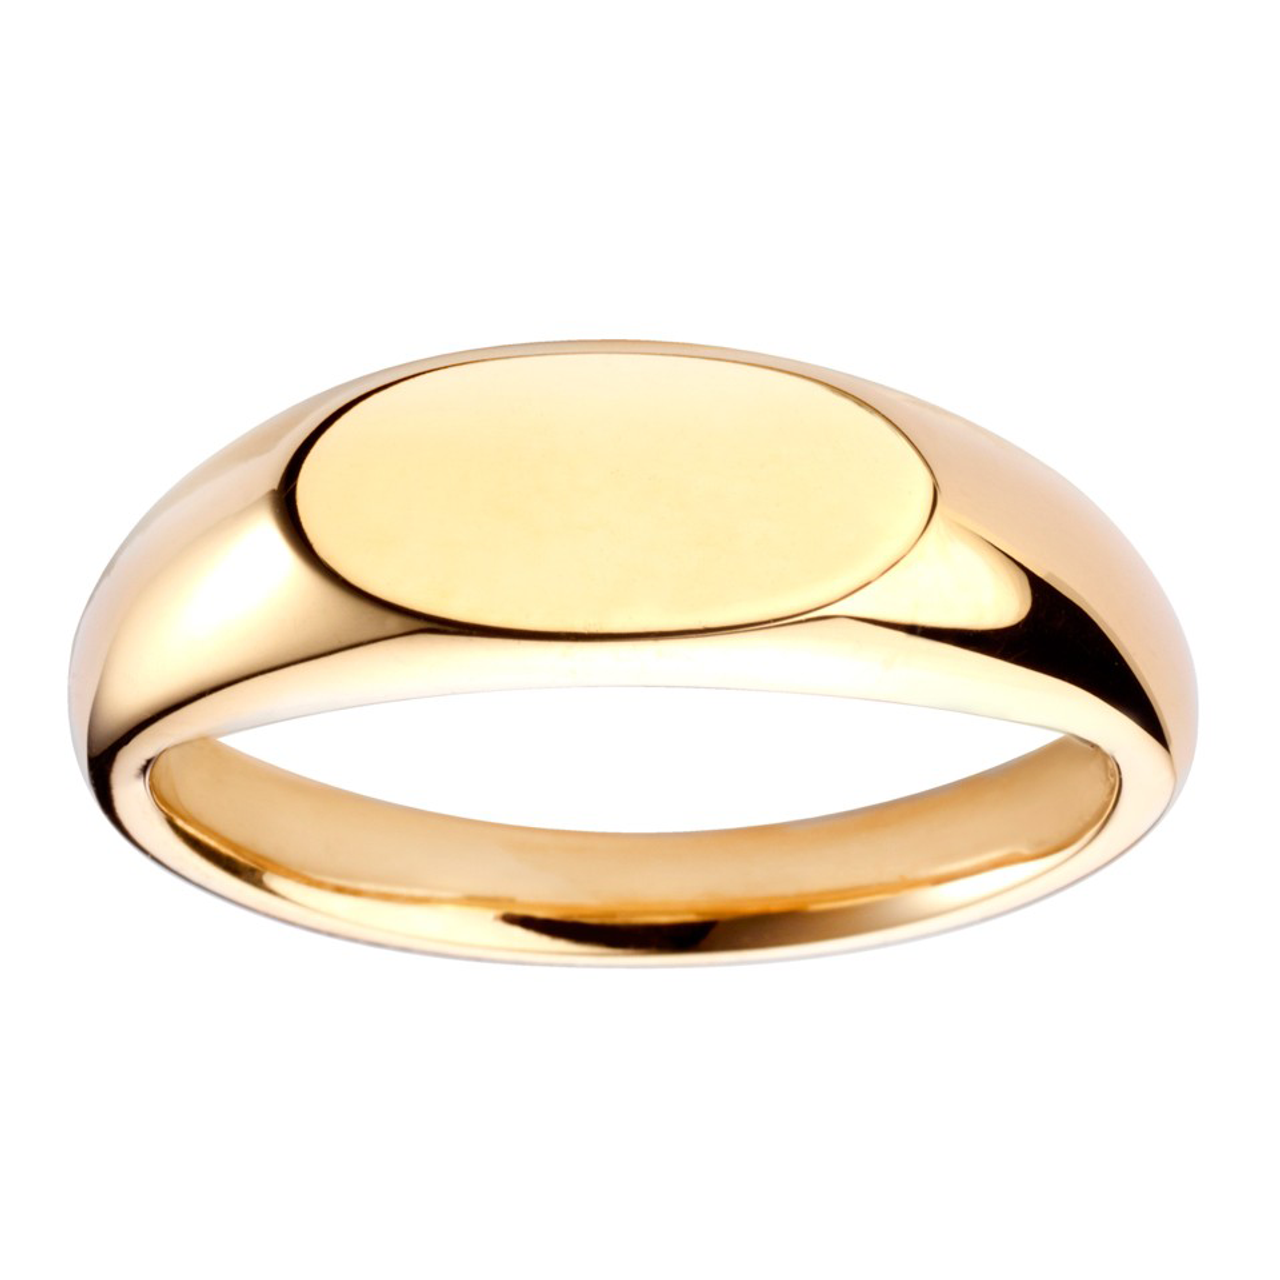 9ct Yellow Gold 11.5x6mm Oval Signet Ring